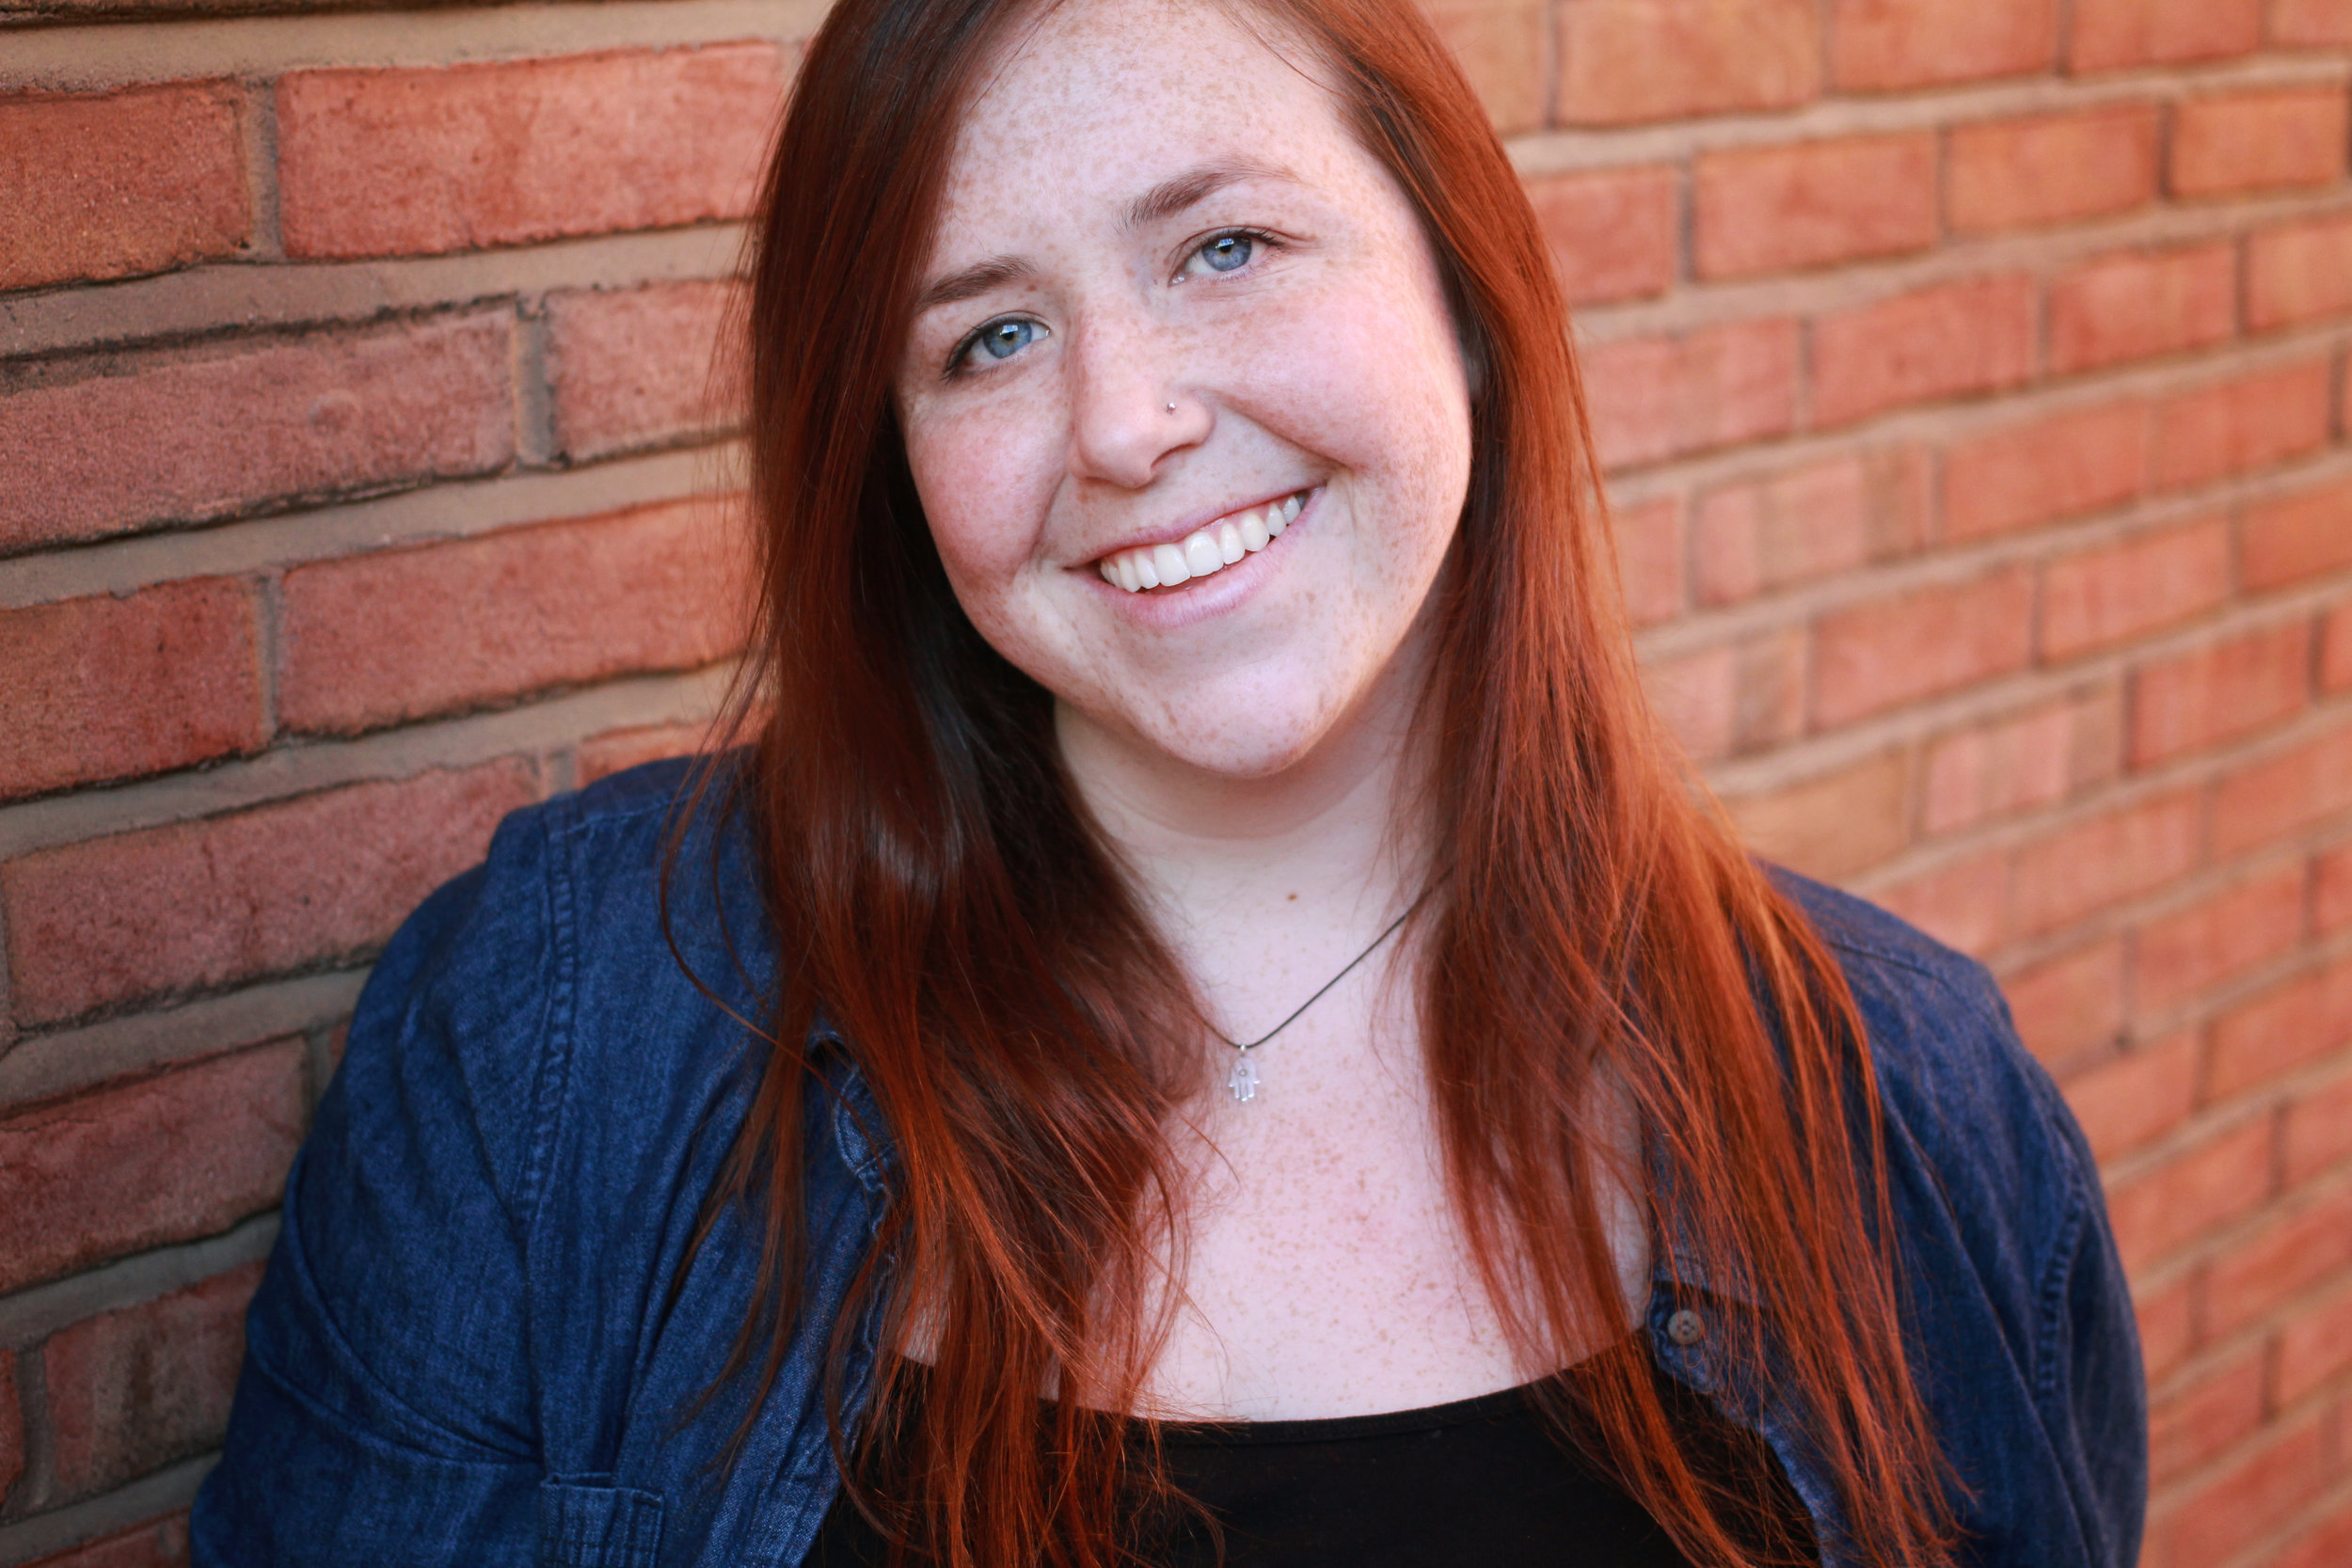 KYOSIN KANG  Katie Hileman (Jill) is a very proud UMBC BFA Acting grad and the Artistic Director of The Interrobang Theatre Company in Baltimore. Katie has performed with many local companies including Rep Stage, Maryland Ensemble Theatre, Single Carrot, and Iron Crow.